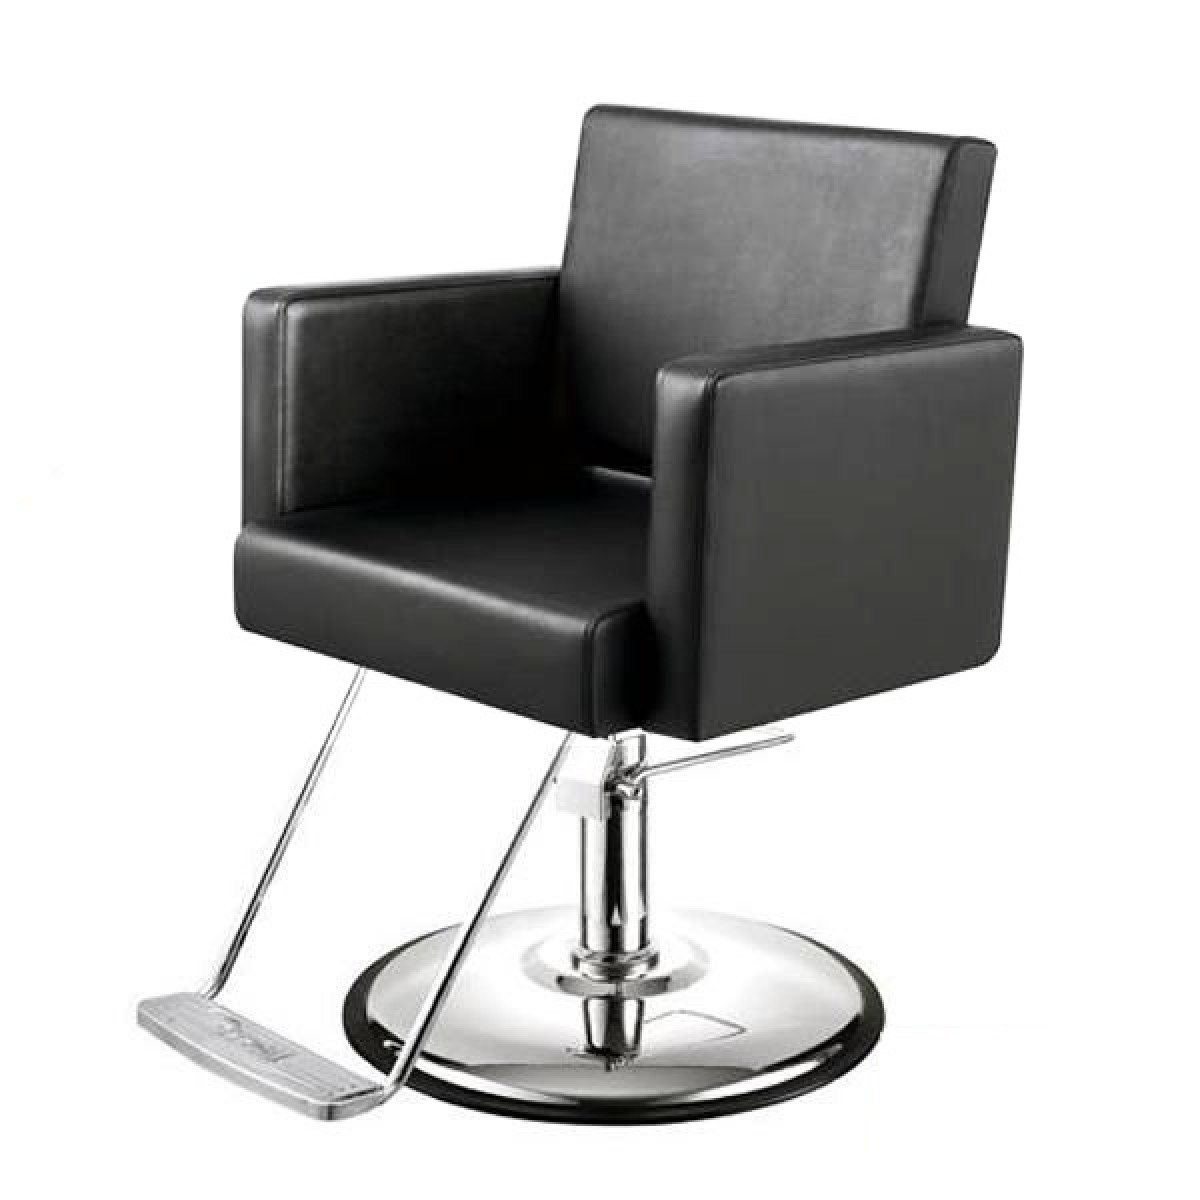 Quot Canon Quot Salon Styling Chair Salon Chairs Styling Chairs